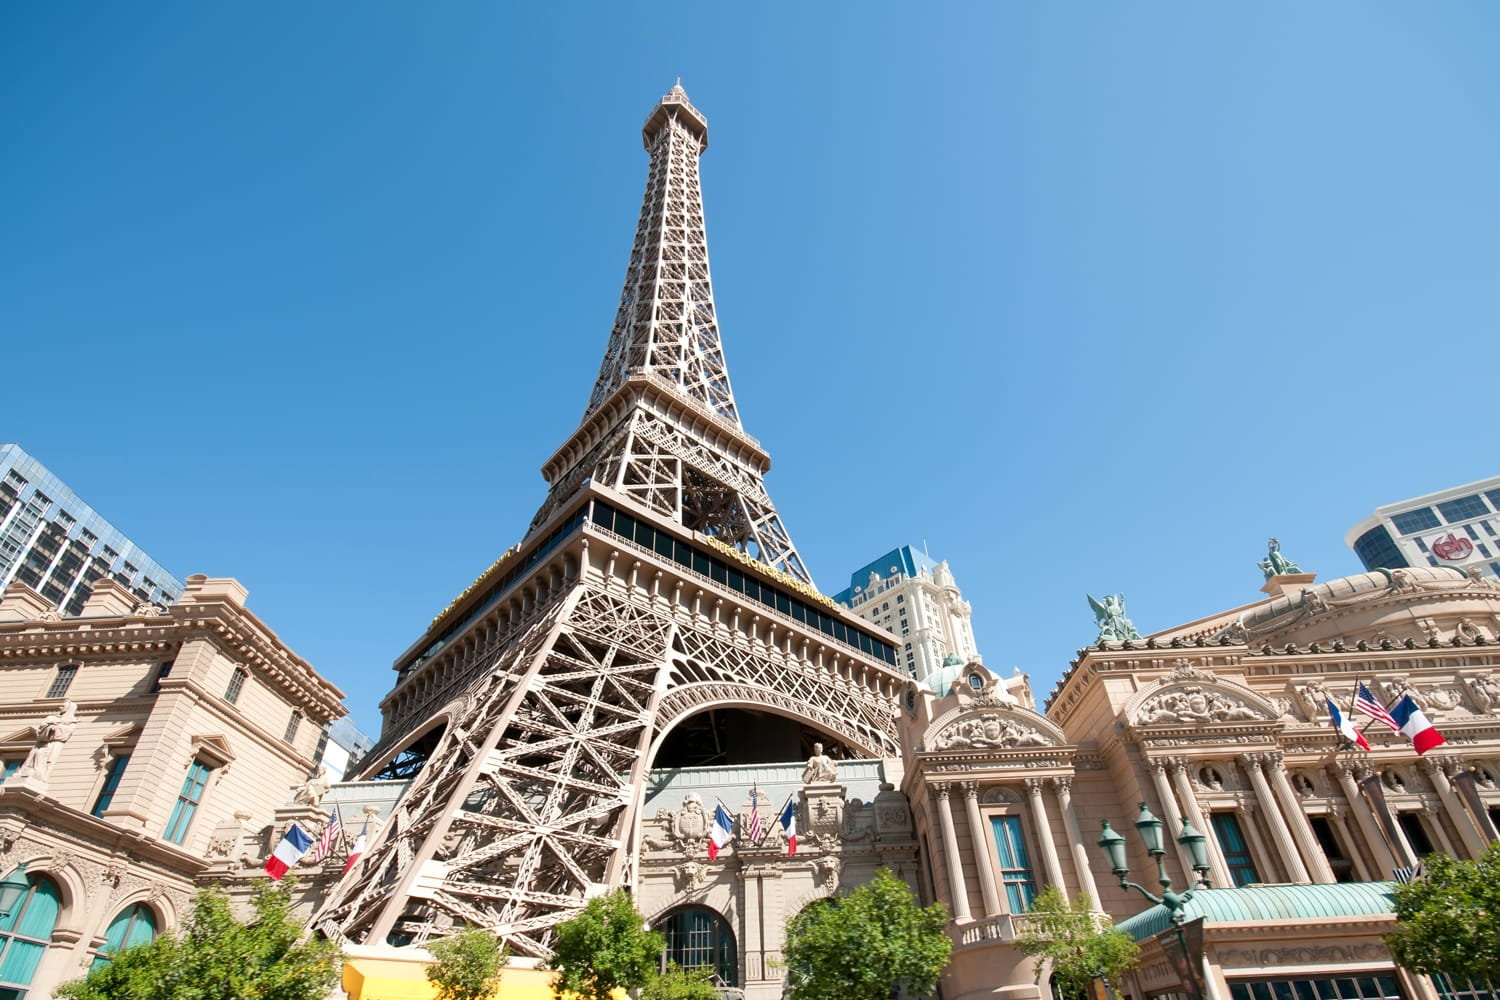 Replica Eiffel Tower in Las Vegas with clear blue sky